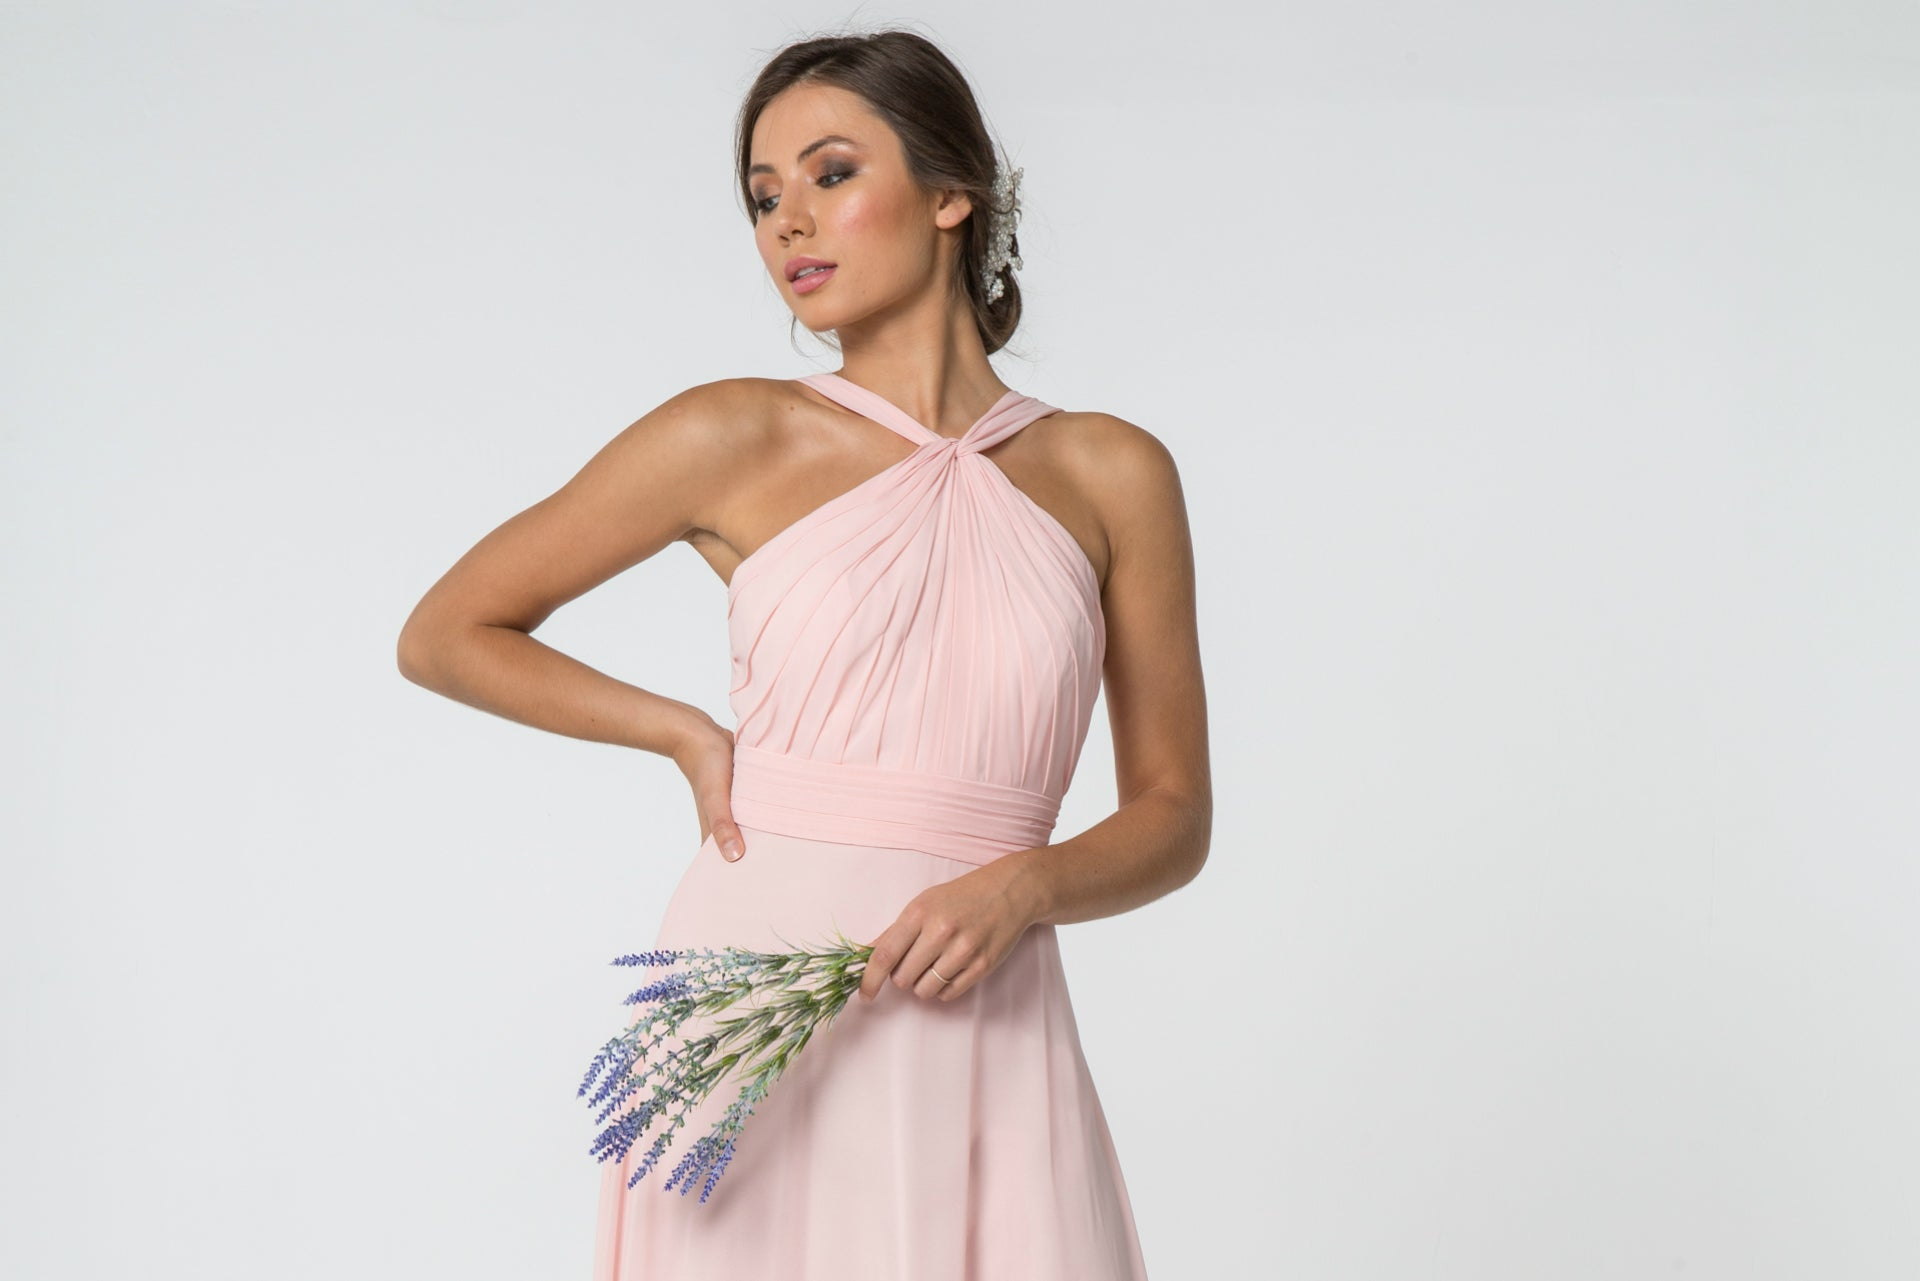 Plain dresses: simple and sexy